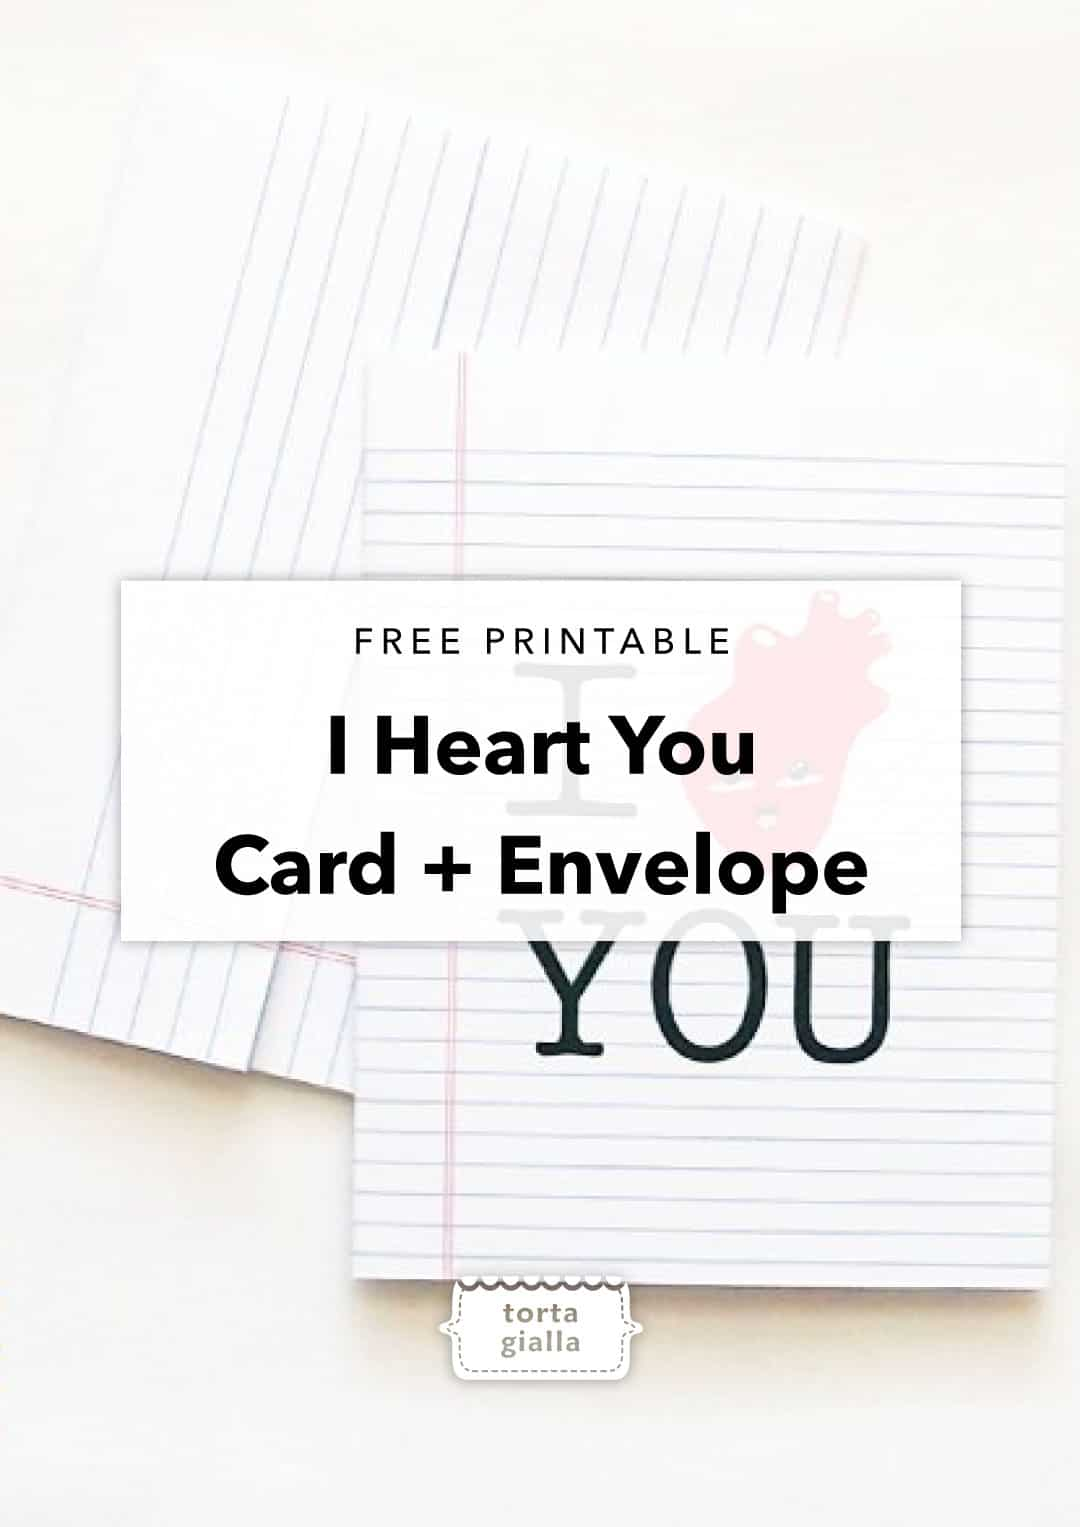 Free Printable I Heart You Card and Envelope